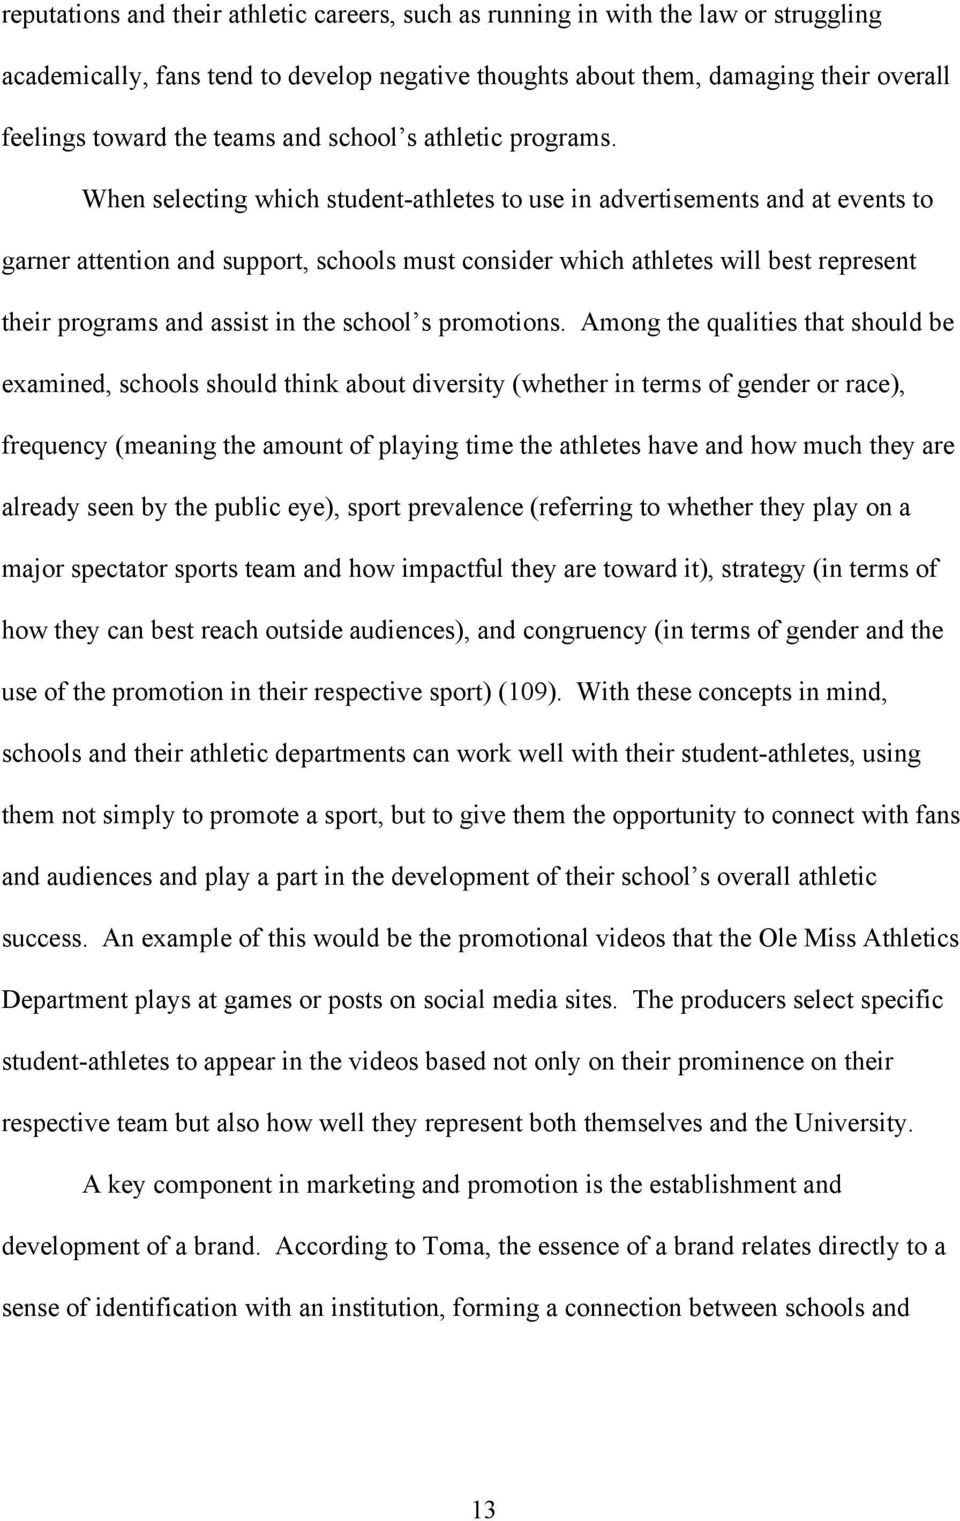 When selecting which student-athletes to use in advertisements and at events to garner attention and support, schools must consider which athletes will best represent their programs and assist in the